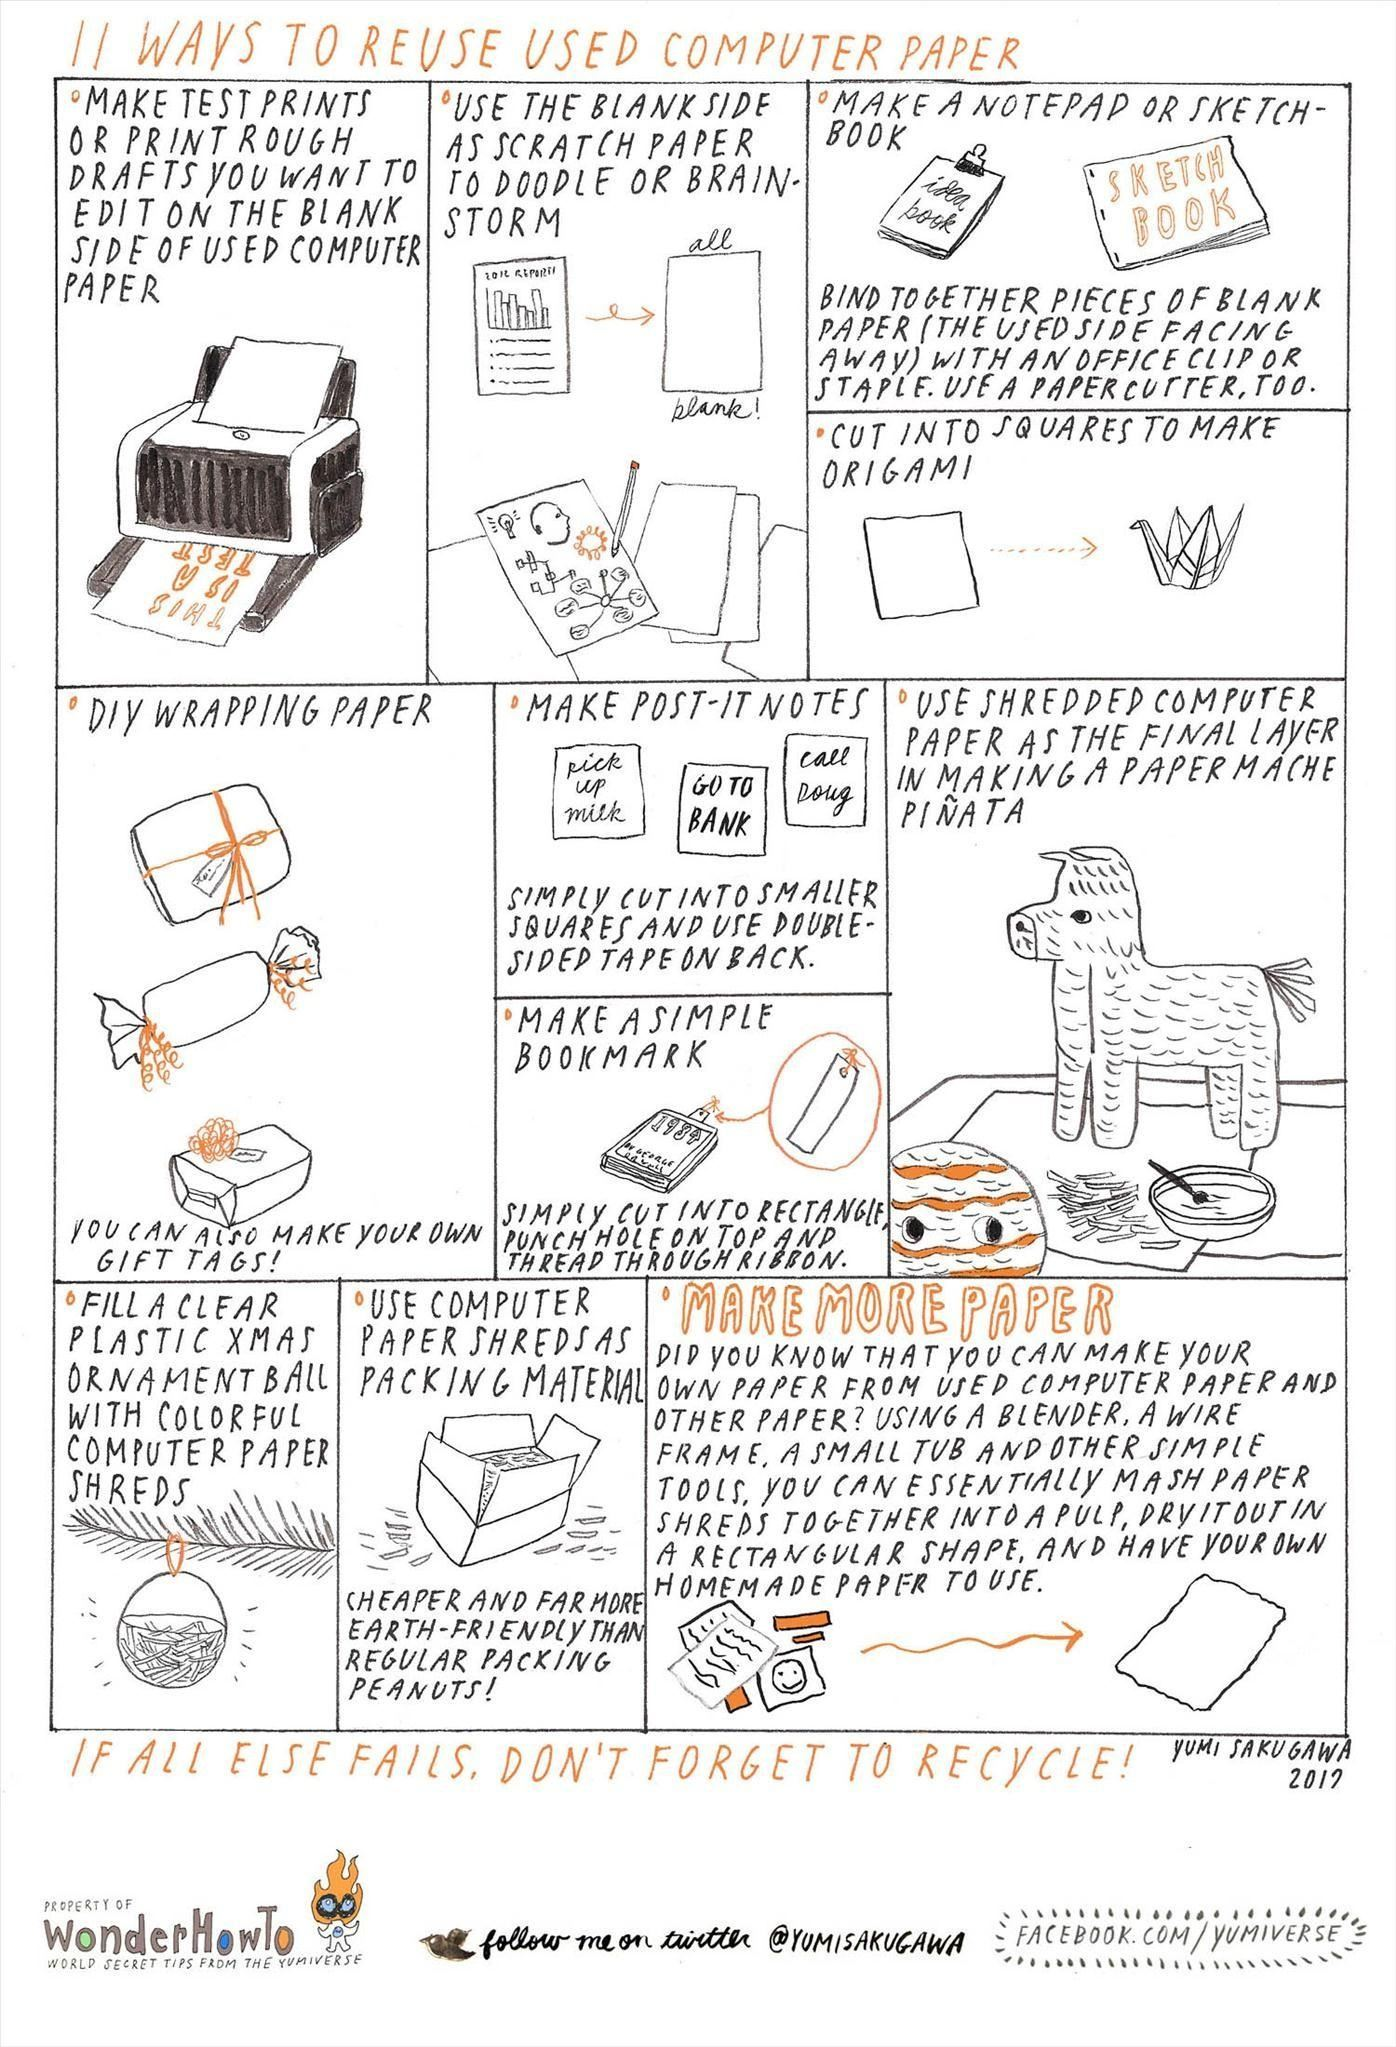 11 Ways to Reuse Used Computer Paper